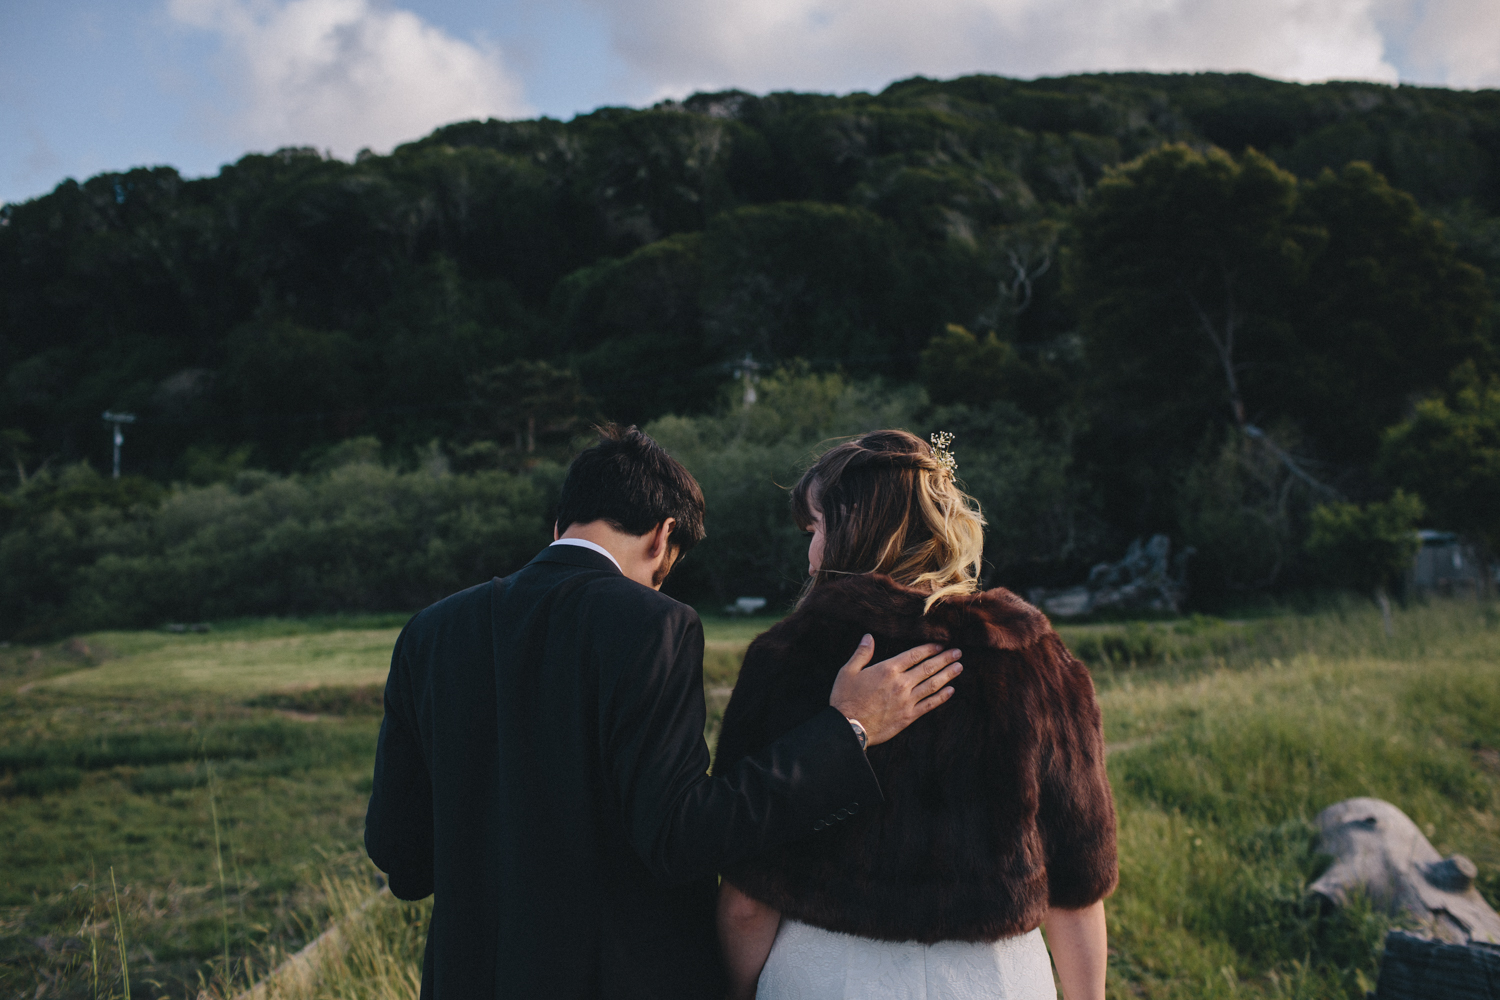 Point Reyes Inverness Wedding Photographer Rachelle Derouin-70.jpg